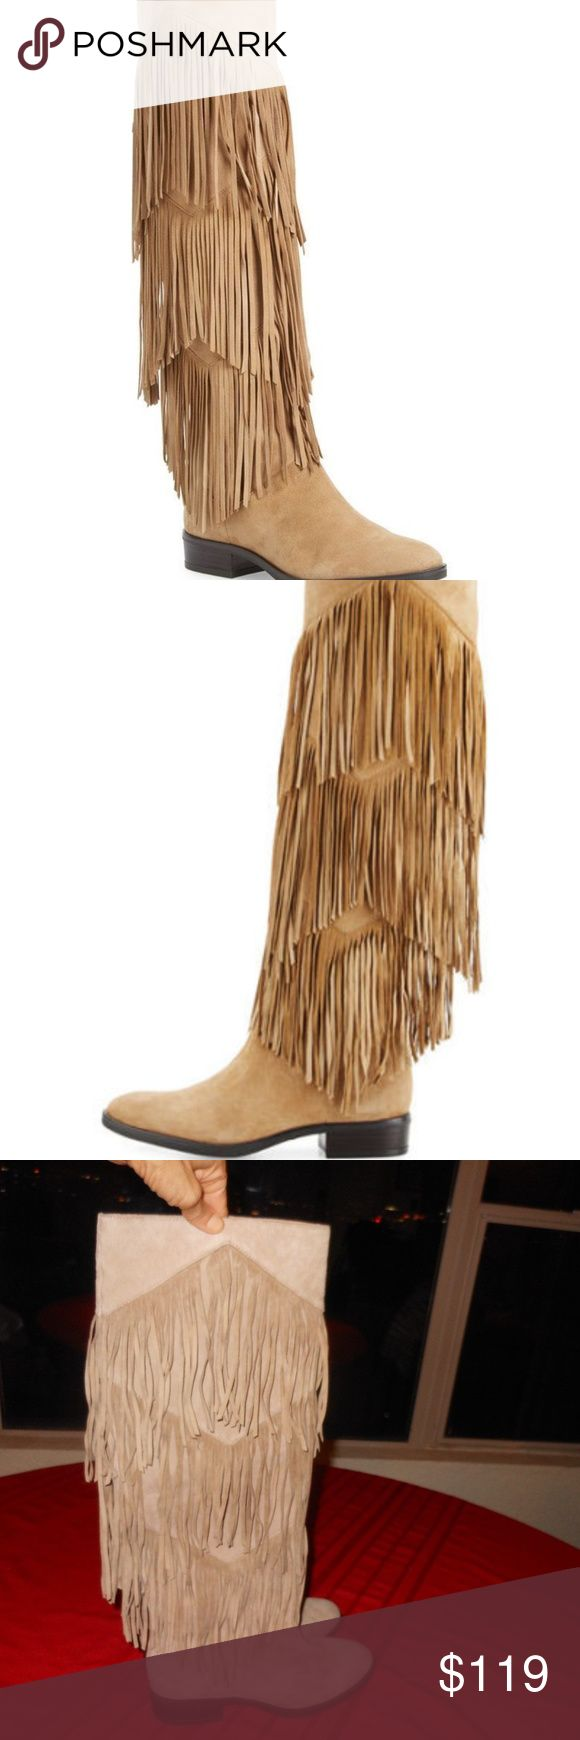 """SAM EDLEMAN """"Pendra"""" Fringe Boots!! 7.5 NEW--NO BOX--SLIGHT SHELF WEAR--POPULAR Boots From SAM EDELMAN!!  LOVE The Layered Fringe Detail-Pull On style with ***1 1/4 Inch Heel and 18 inch Shaft*****NICE! Sam Edleman Shoes Heeled Boots"""